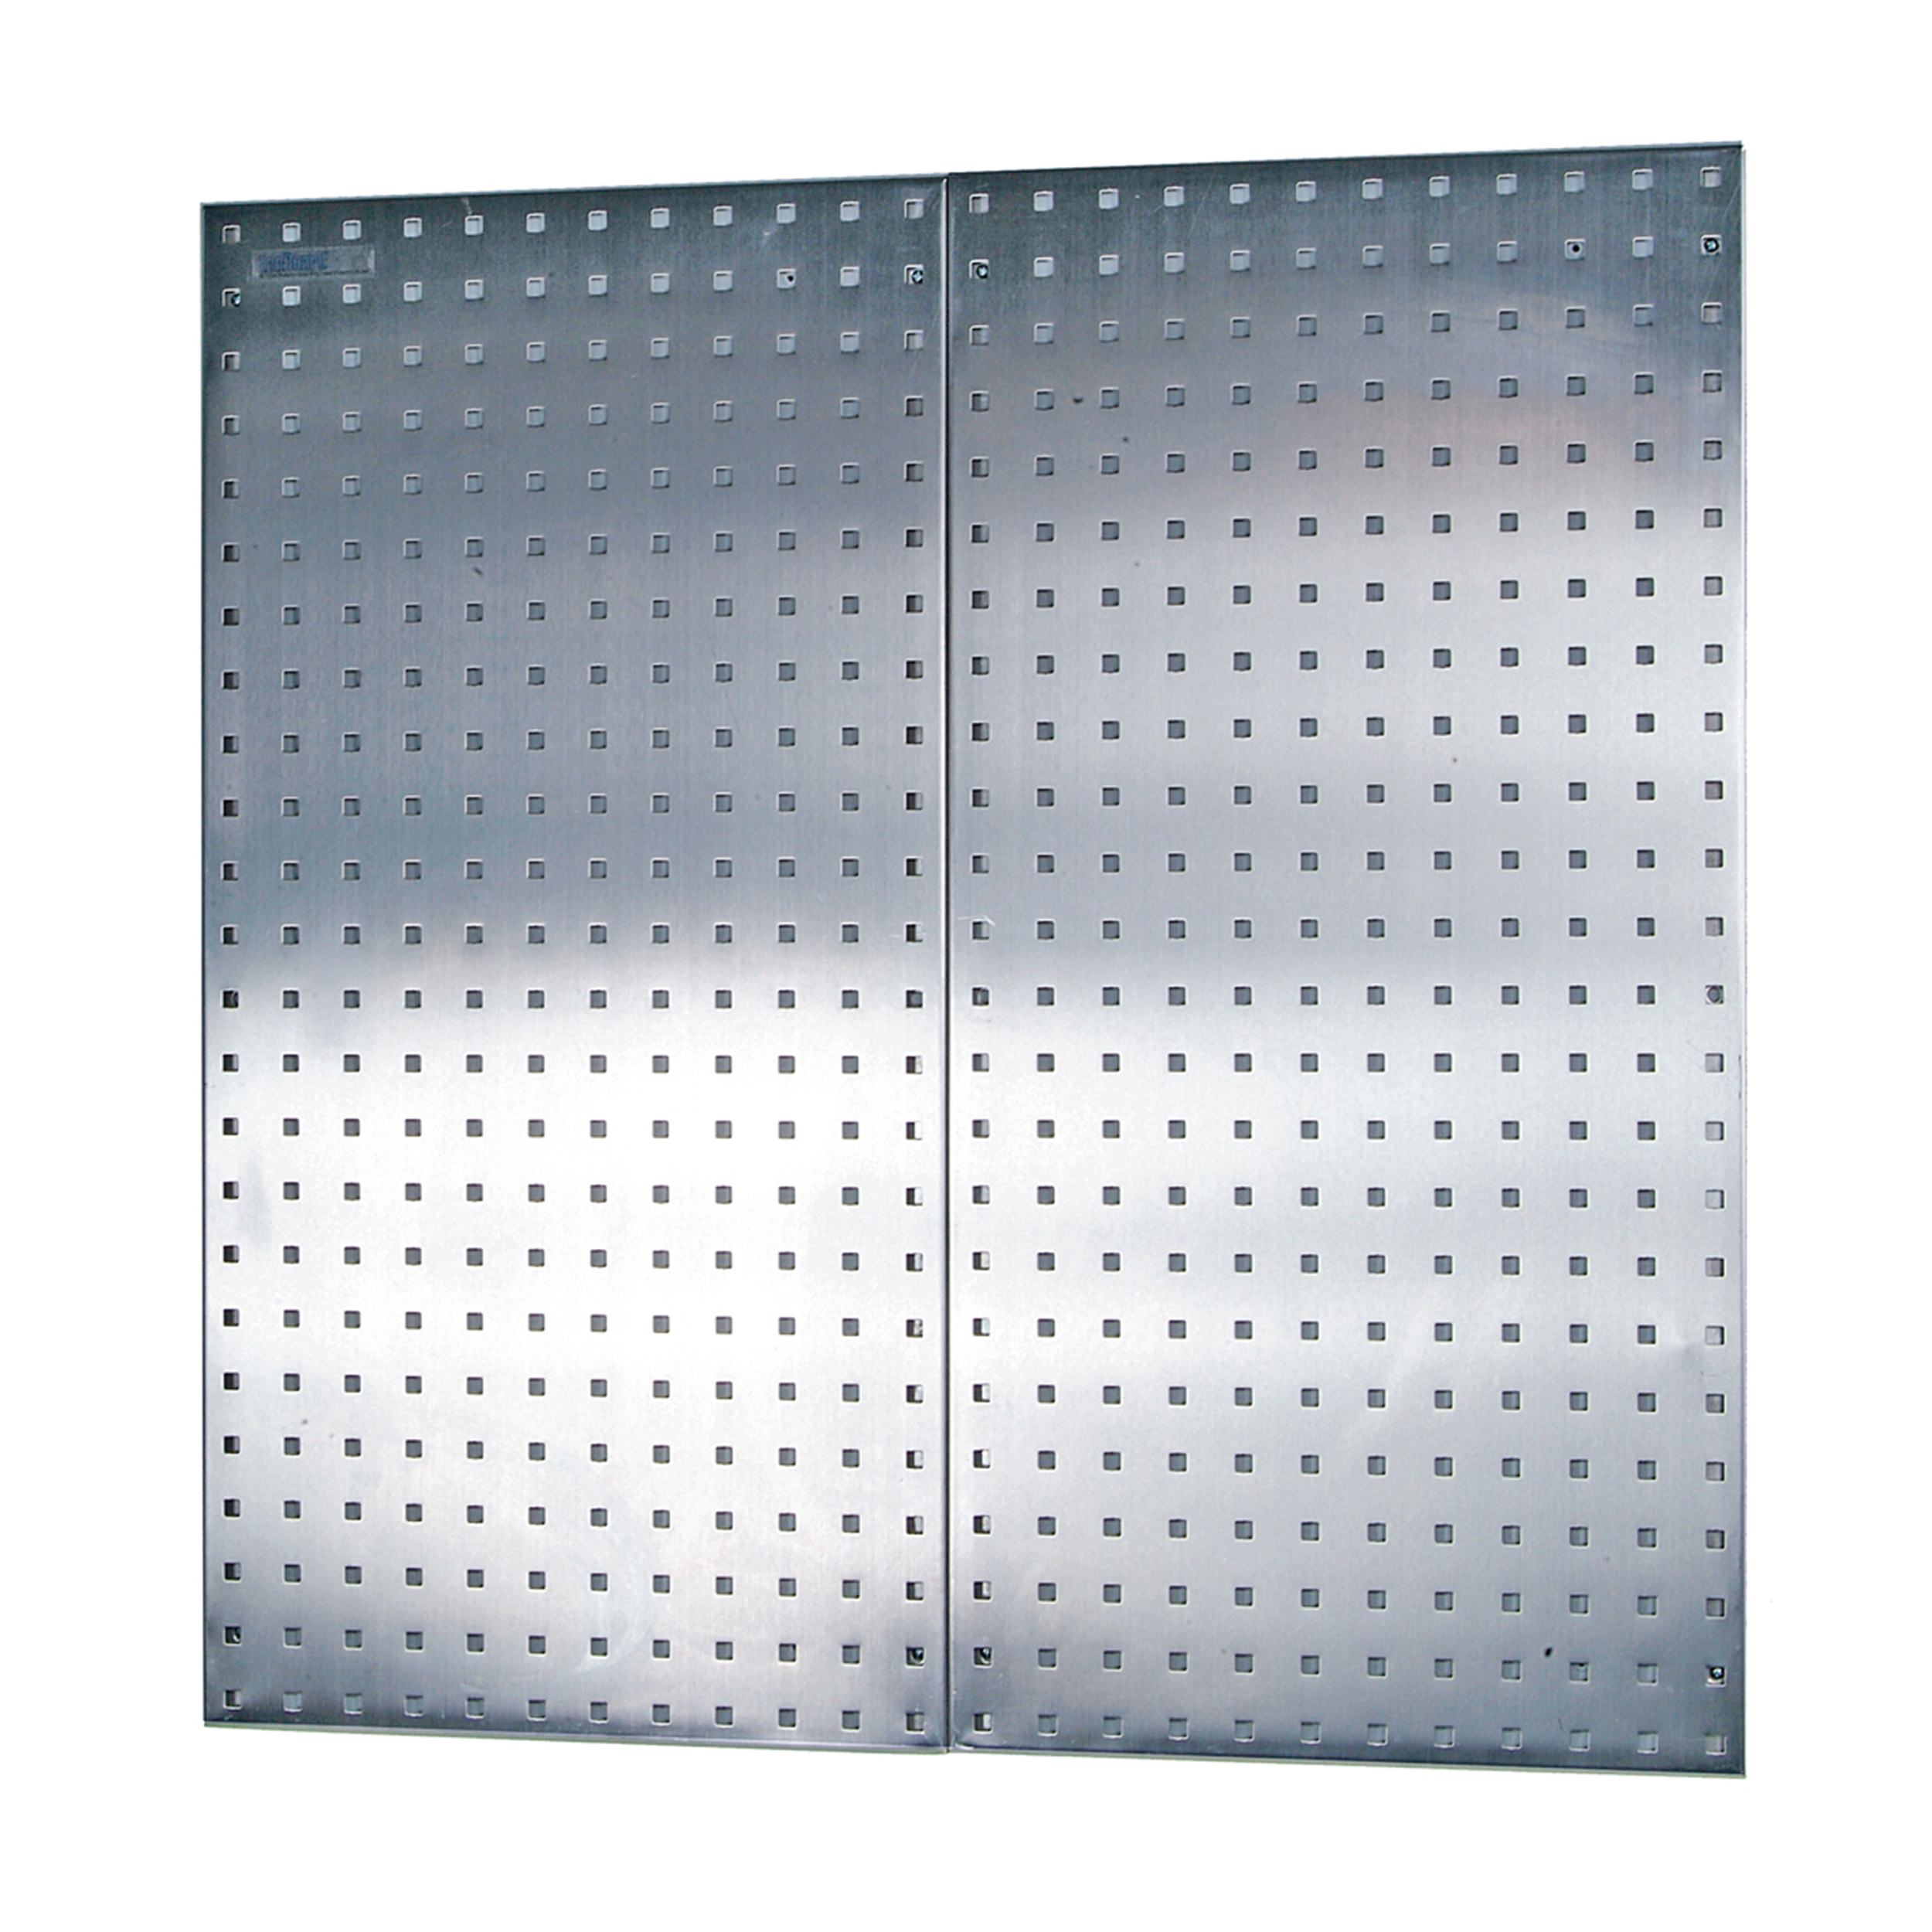 (2) 18 In. W x 36 In. H x 1/2 In. D 304 Stainless Steel Square Hole Pegboards with Wall Mounting Hardware